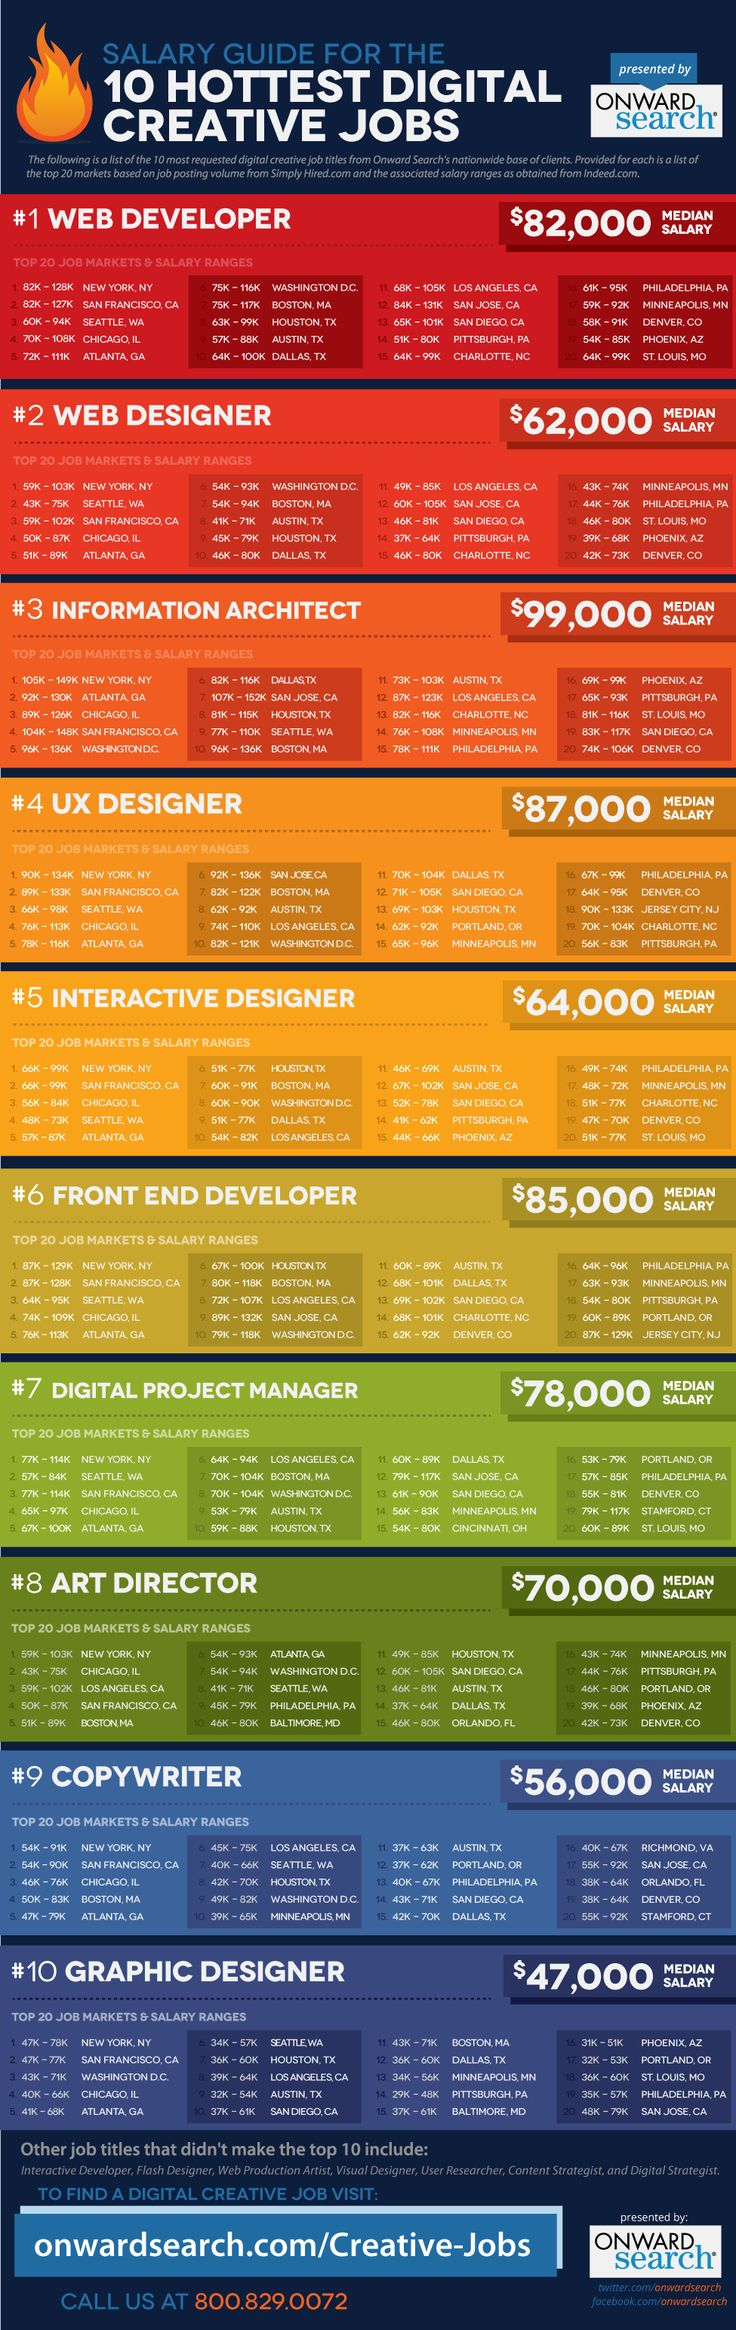 Digital Creative Jobs Salary Guide :(Web Design, 10 Hottest, Job Search, Hottest Digital, Digital Creative, Salary Guide, Infographic, Retrato-Port Digital, Creative Job